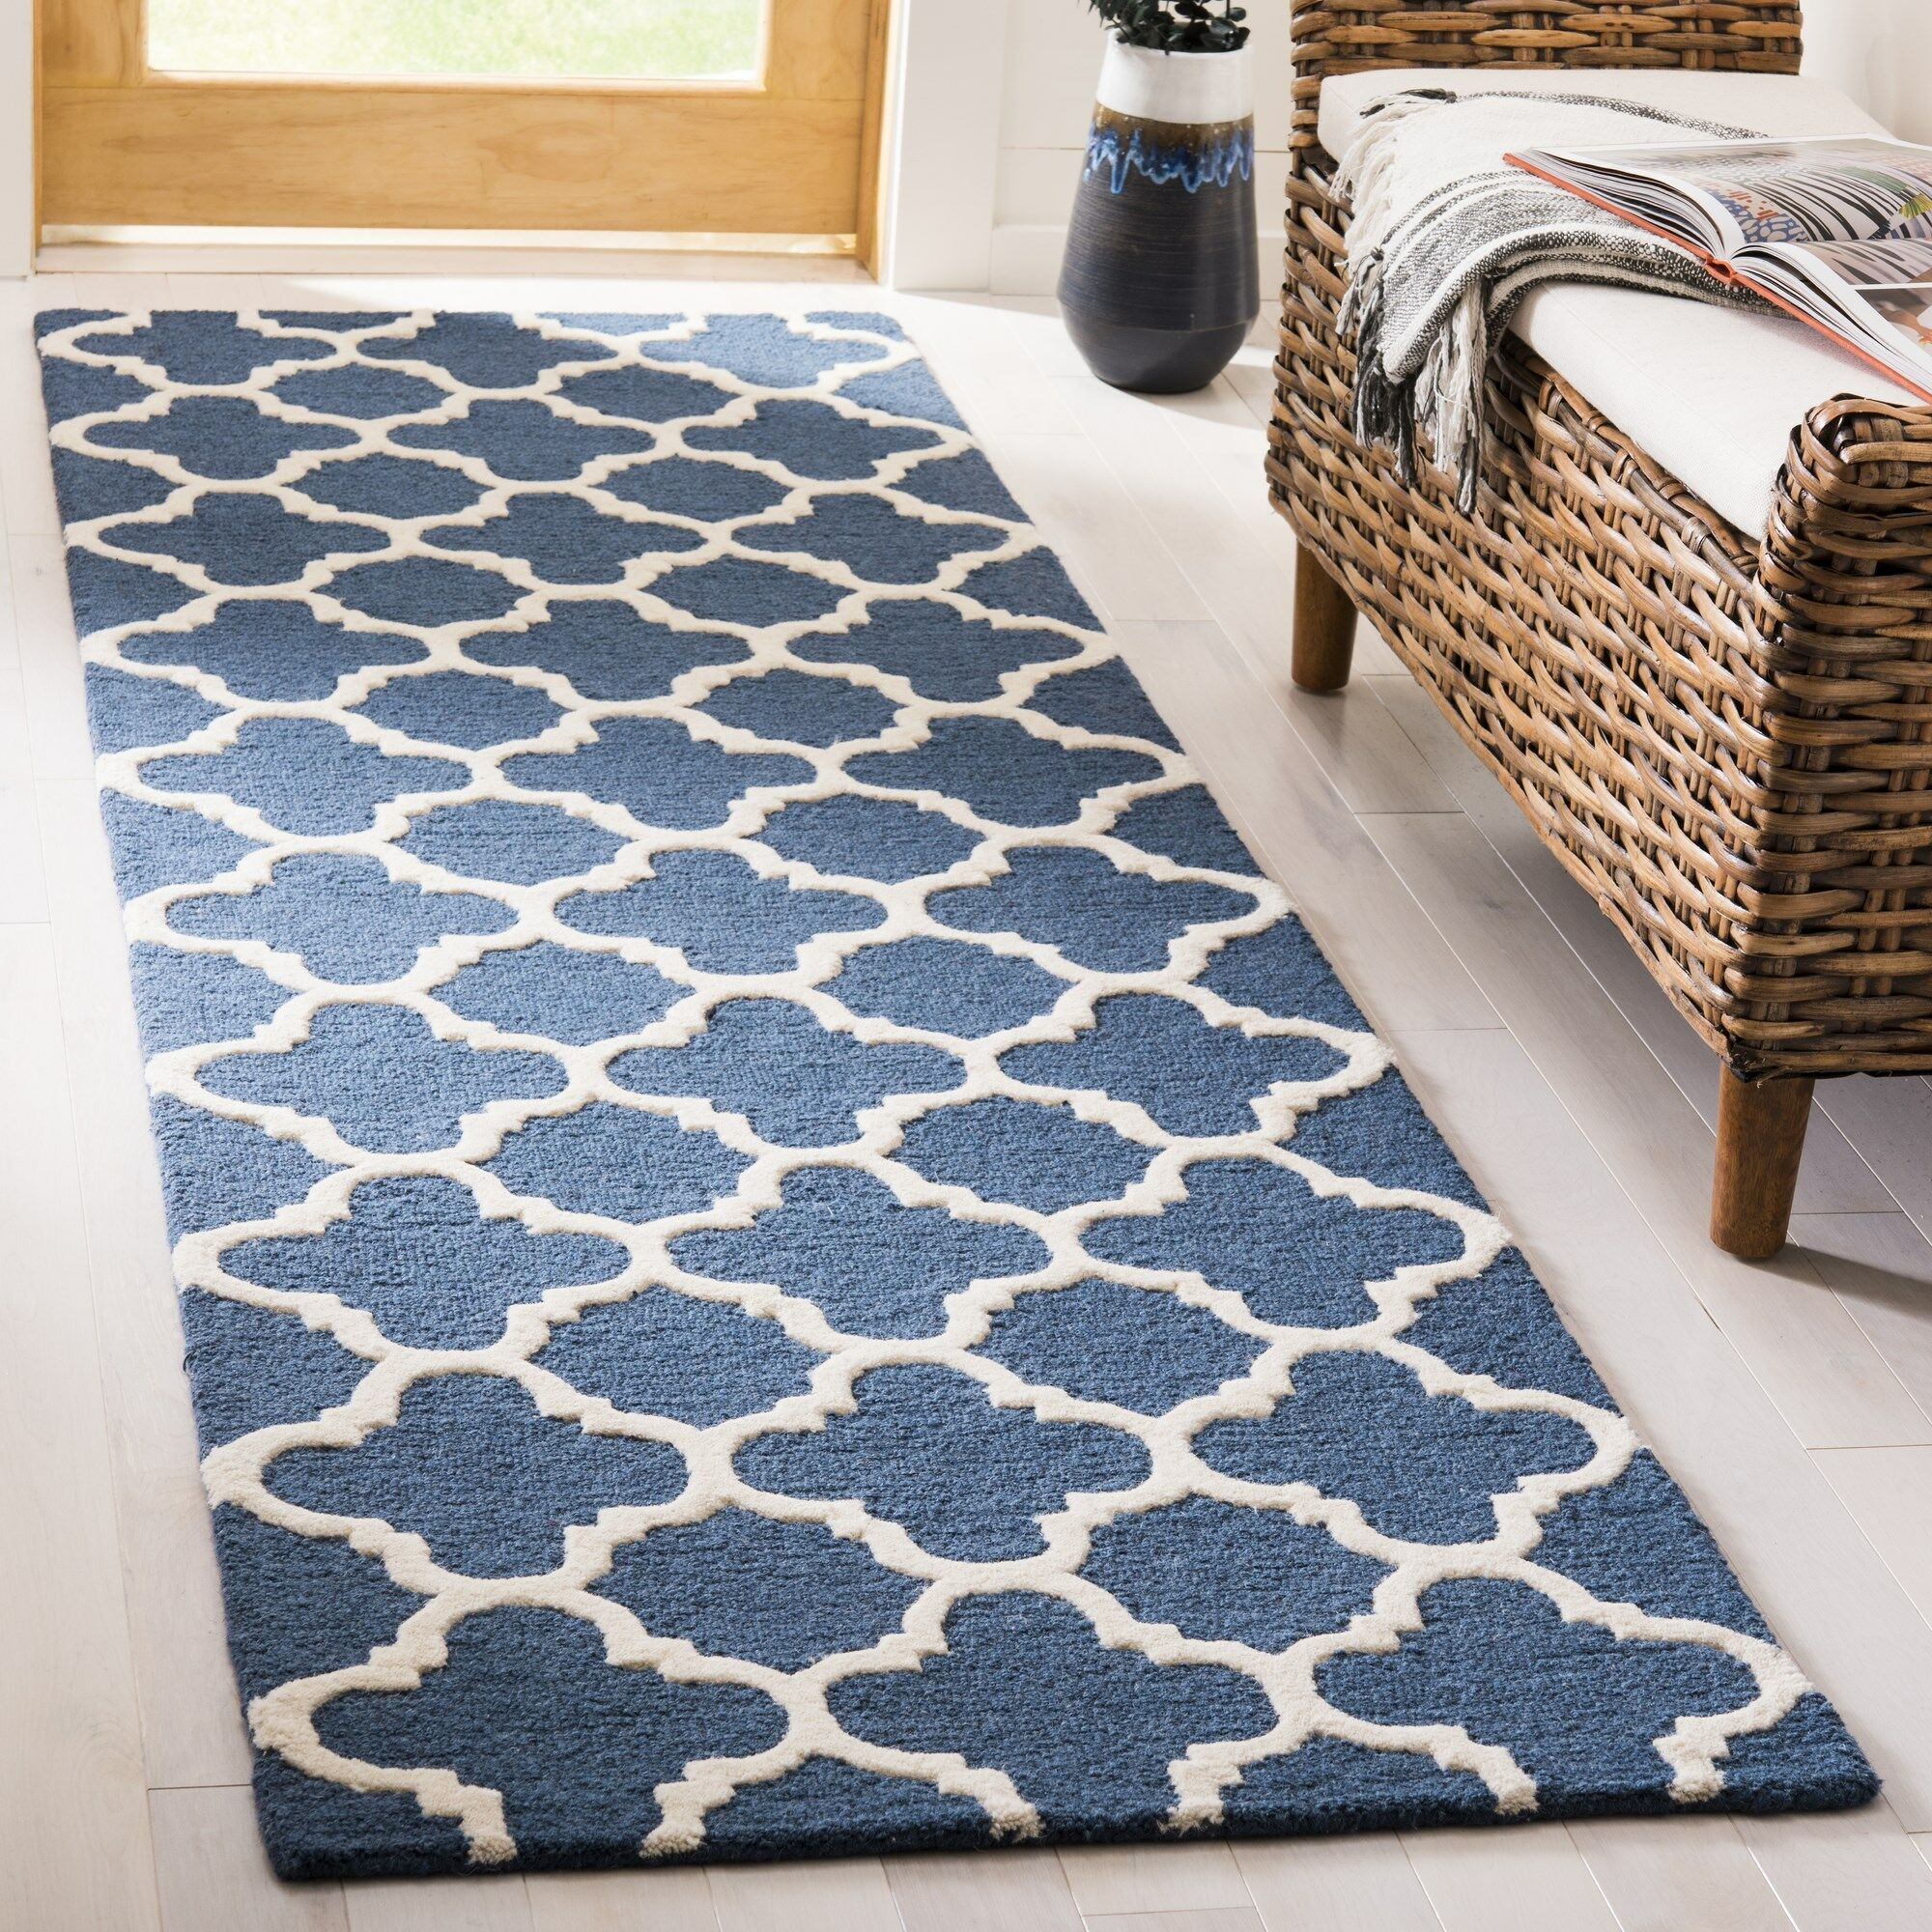 Martins Hand-Tufted Wool Blue Area Rug Rug Size: Runner 2'6